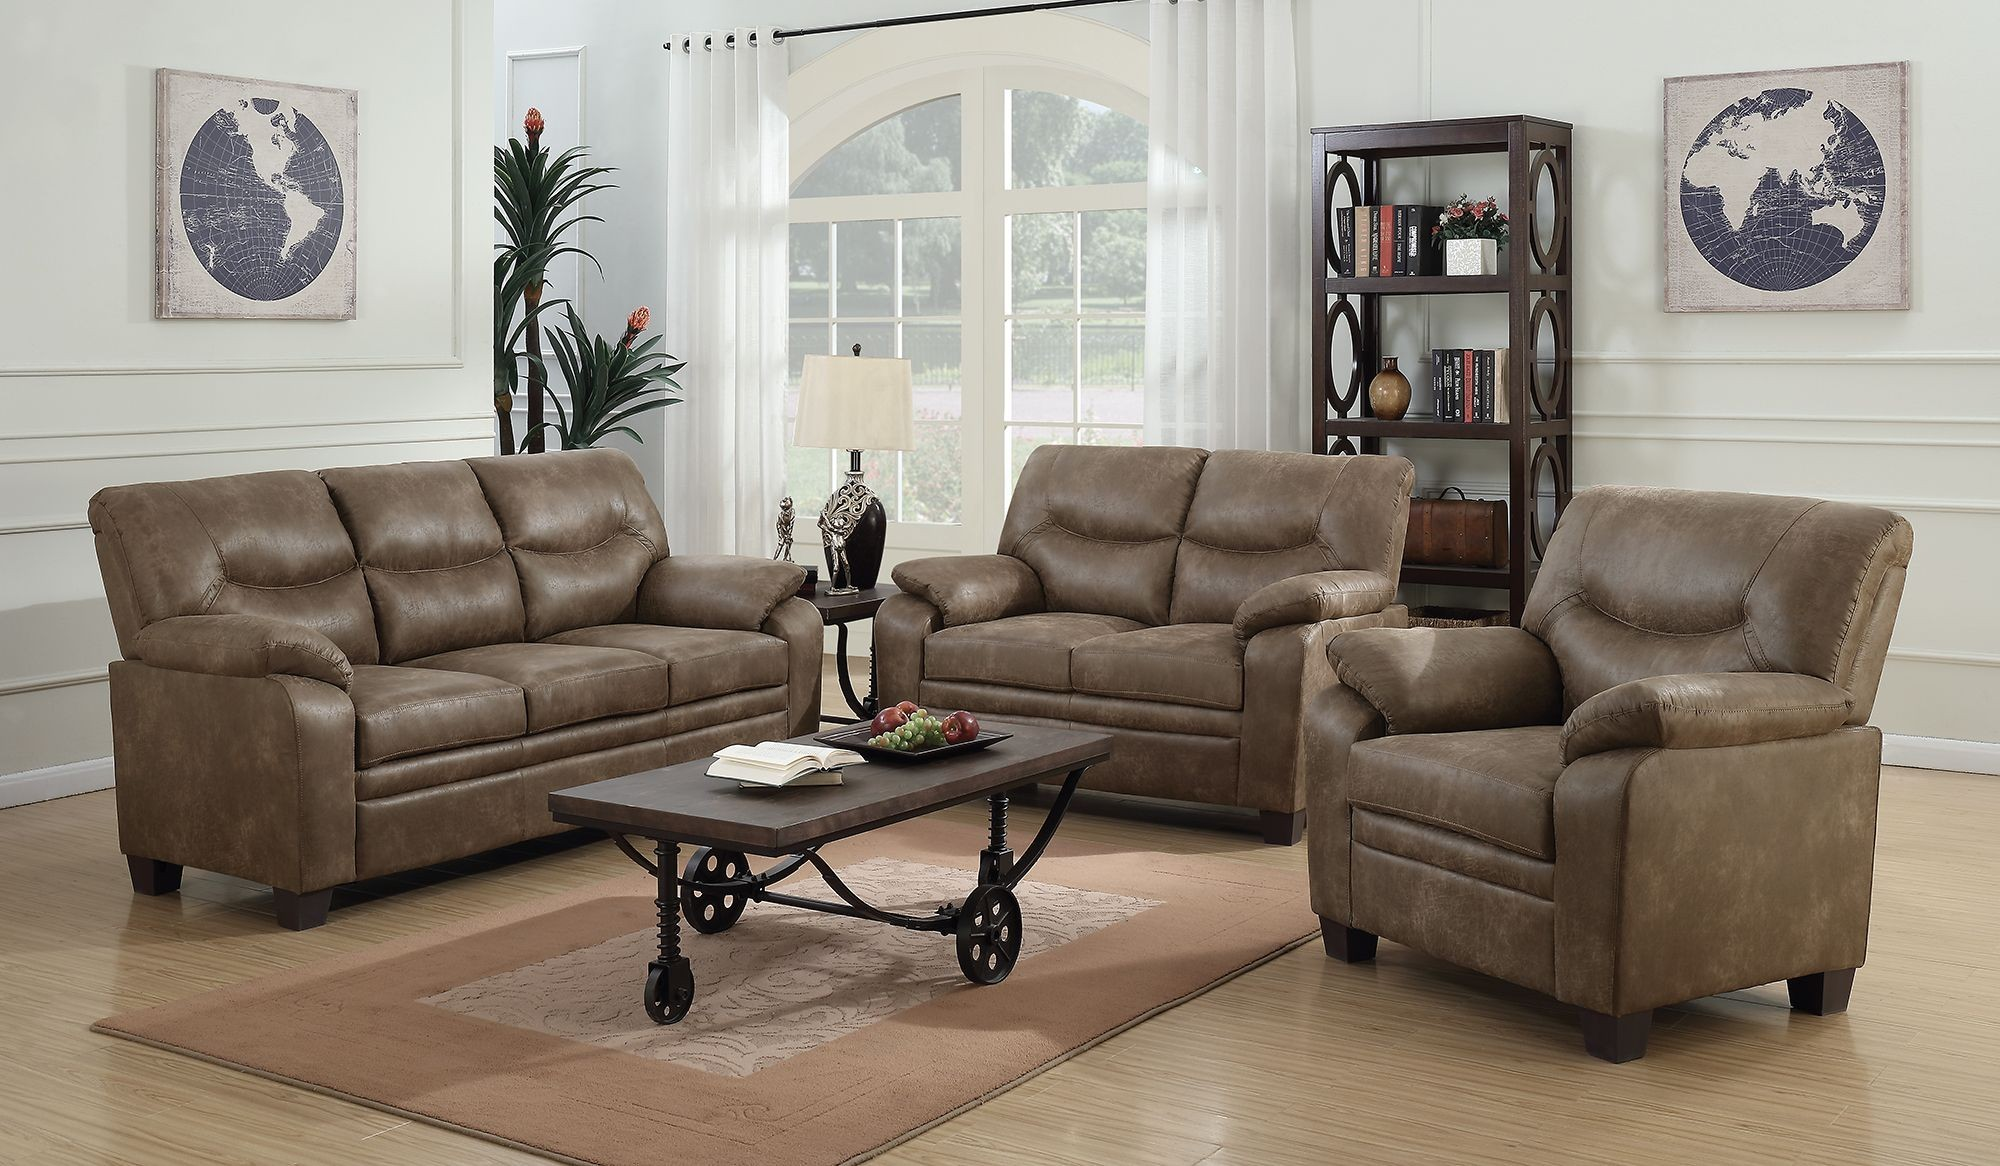 Meagan brown living room set 506561 62 coaster furniture for Front room furniture sets